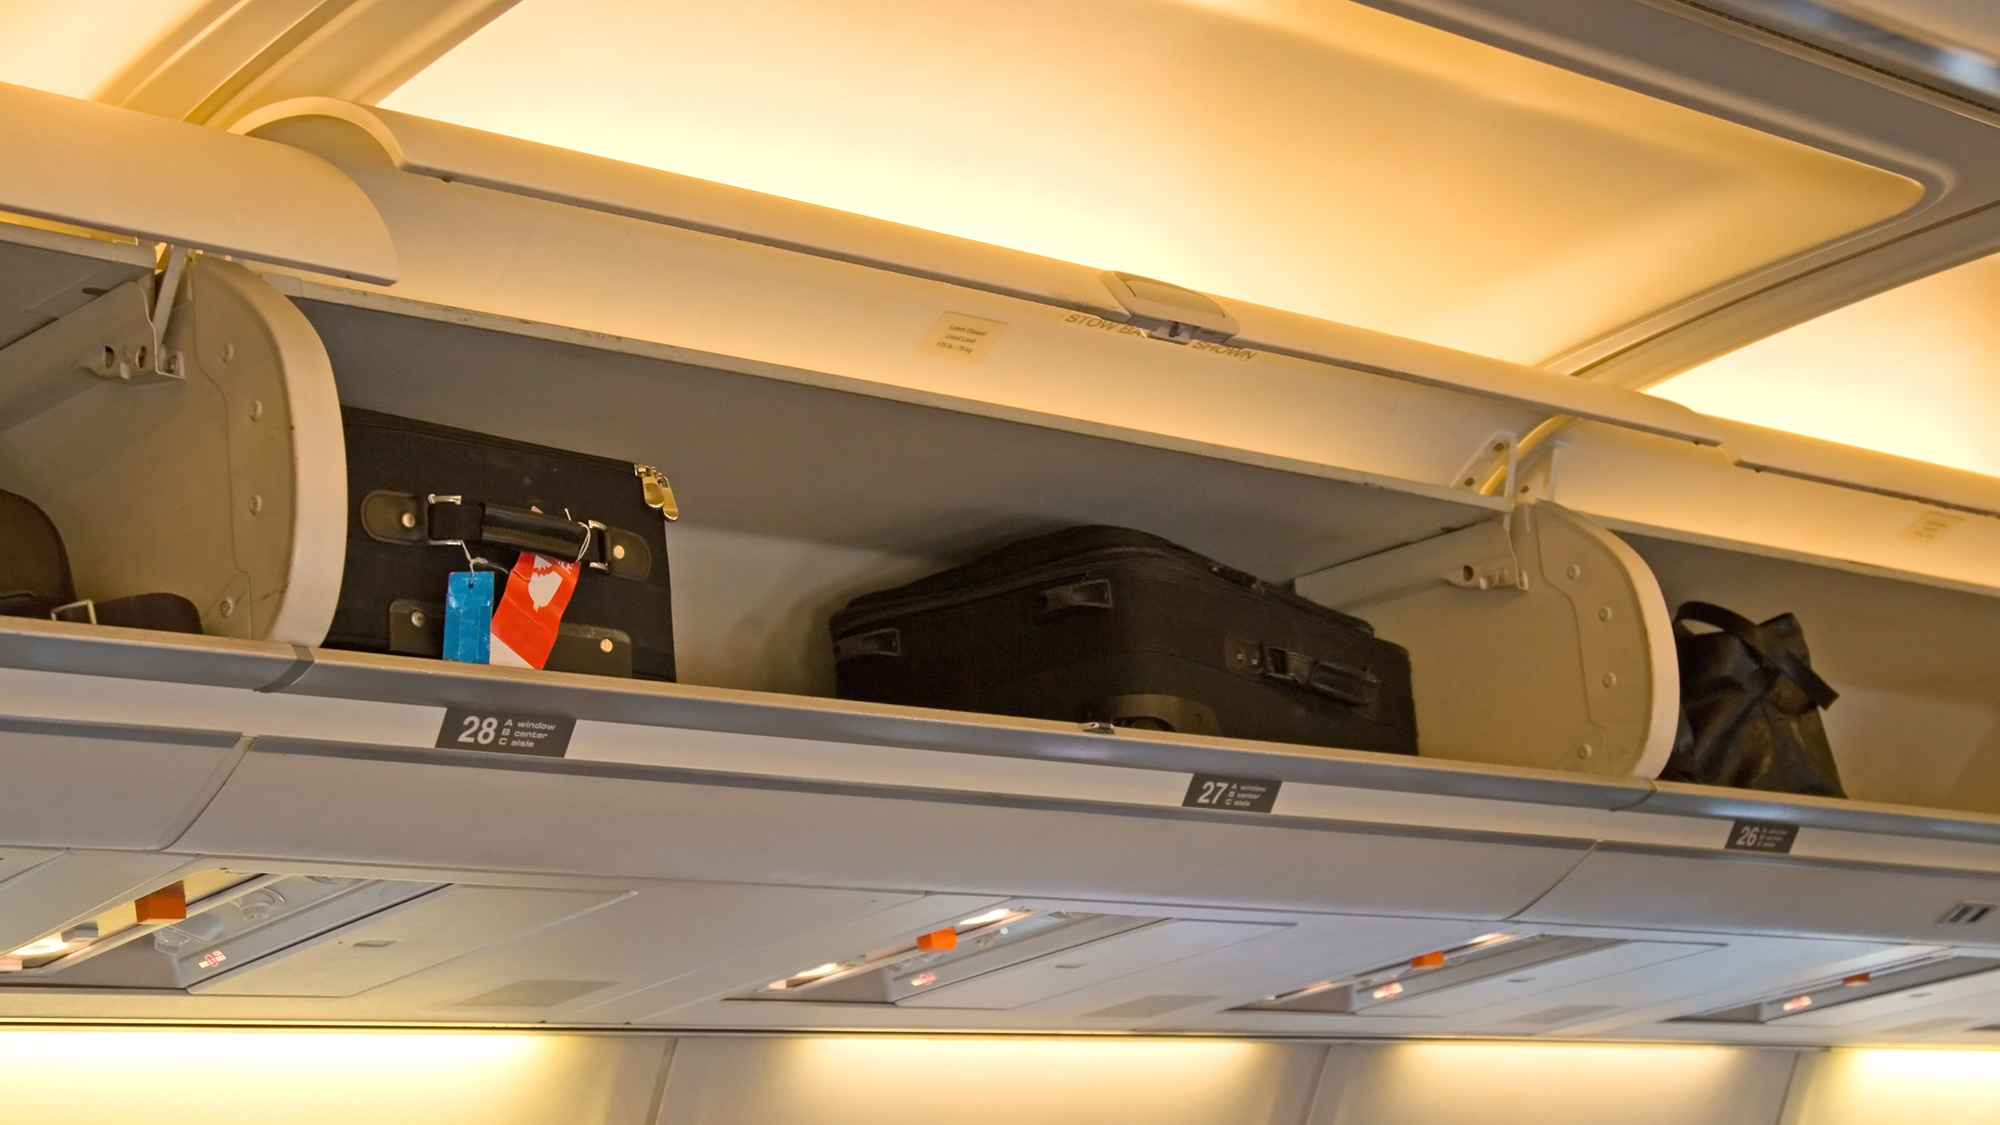 Airlines want to make carry-on bags even smaller